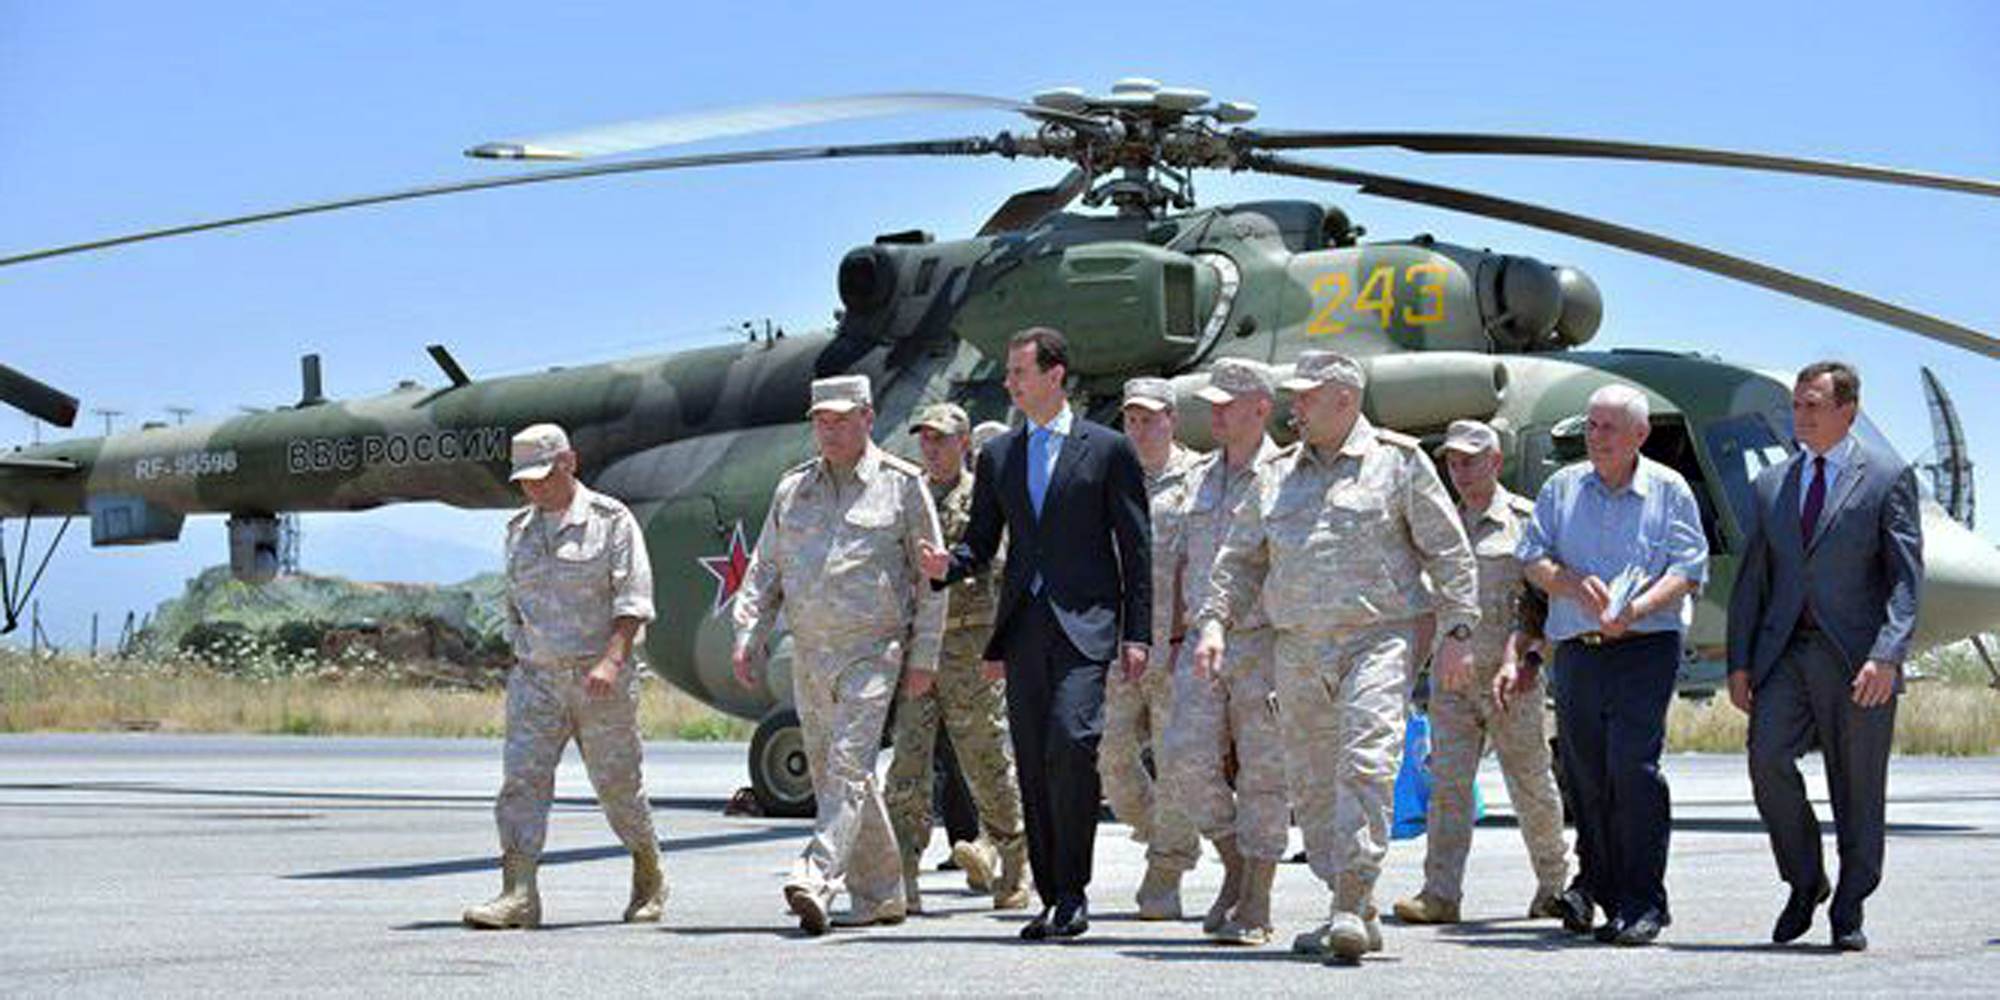 Syria's President Bashar al-Assad visits a Russian air base at Hmeymim, in western Syria in this handout picture posted on SANA on June 27, 2017, Syria.